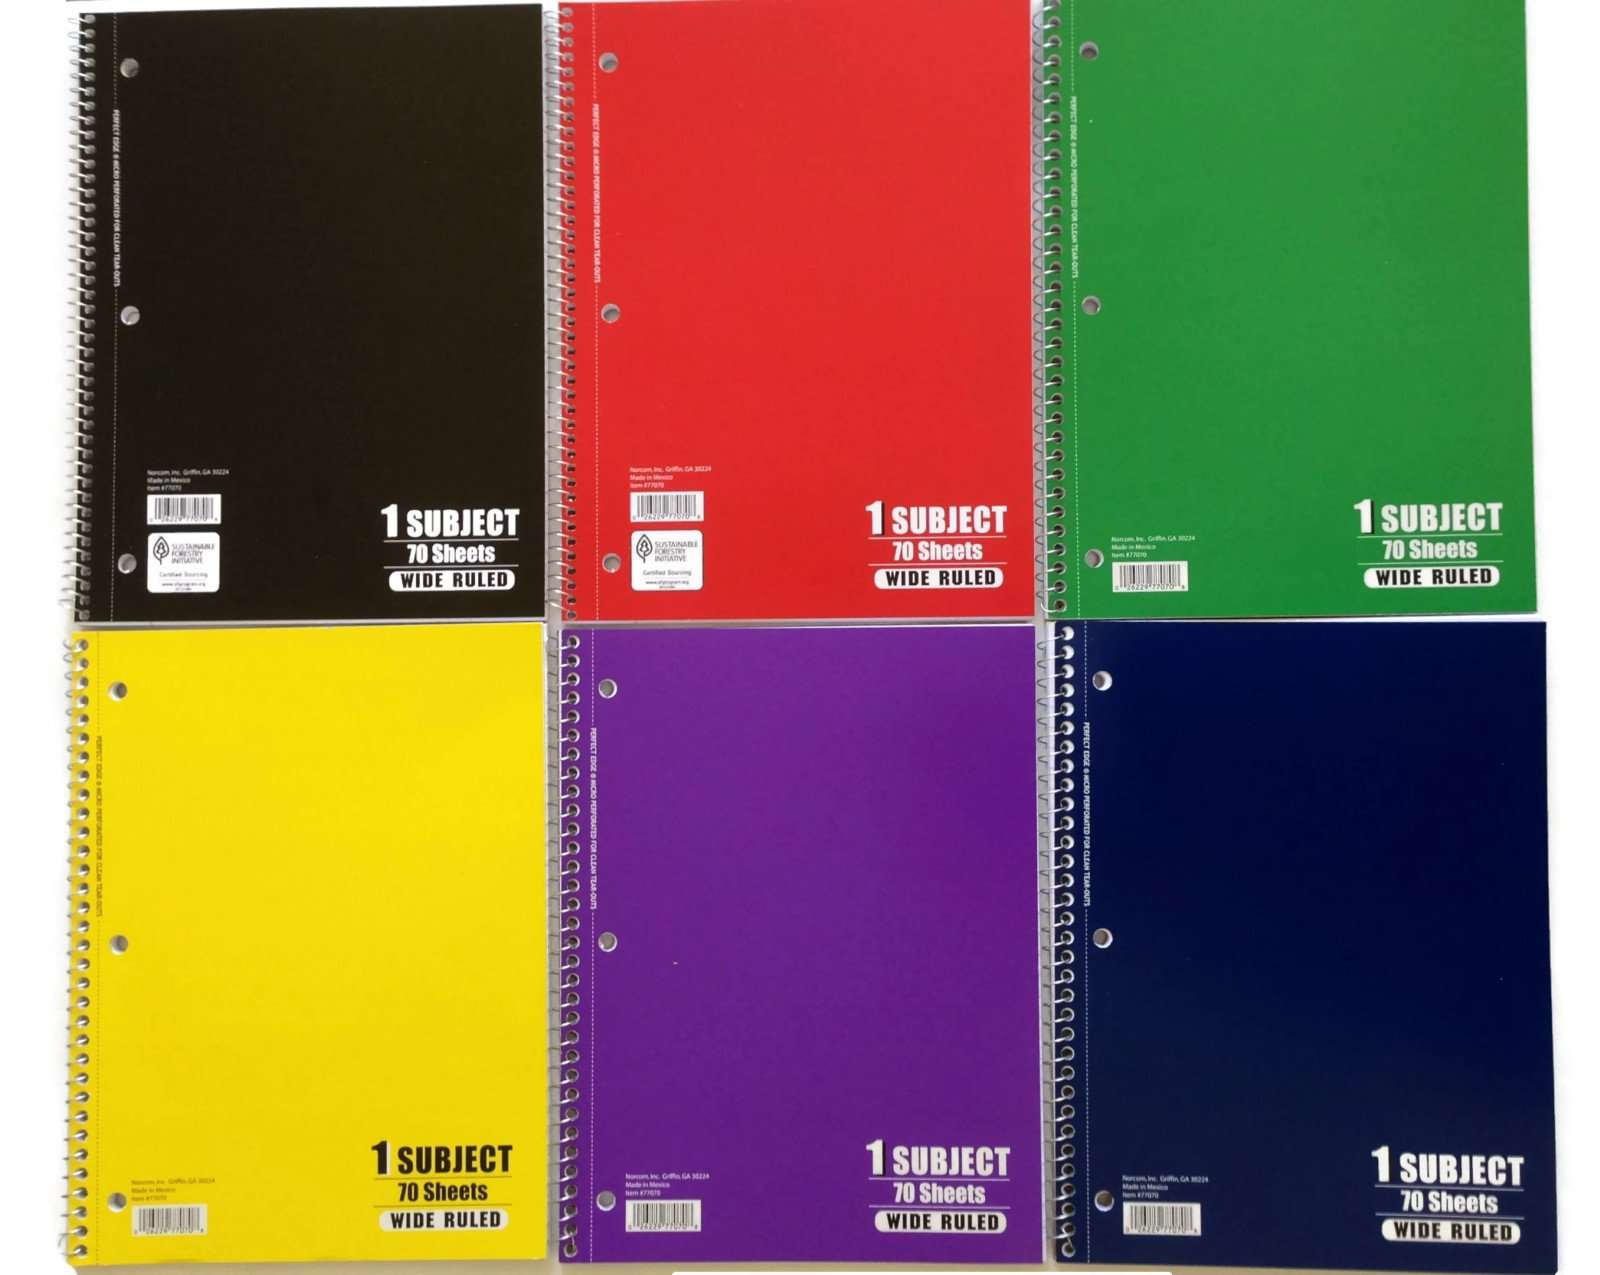 Norcom 1 Subject, Wide Ruled, 70 Sheet Notebooks (6 Pack Of Various Colors)